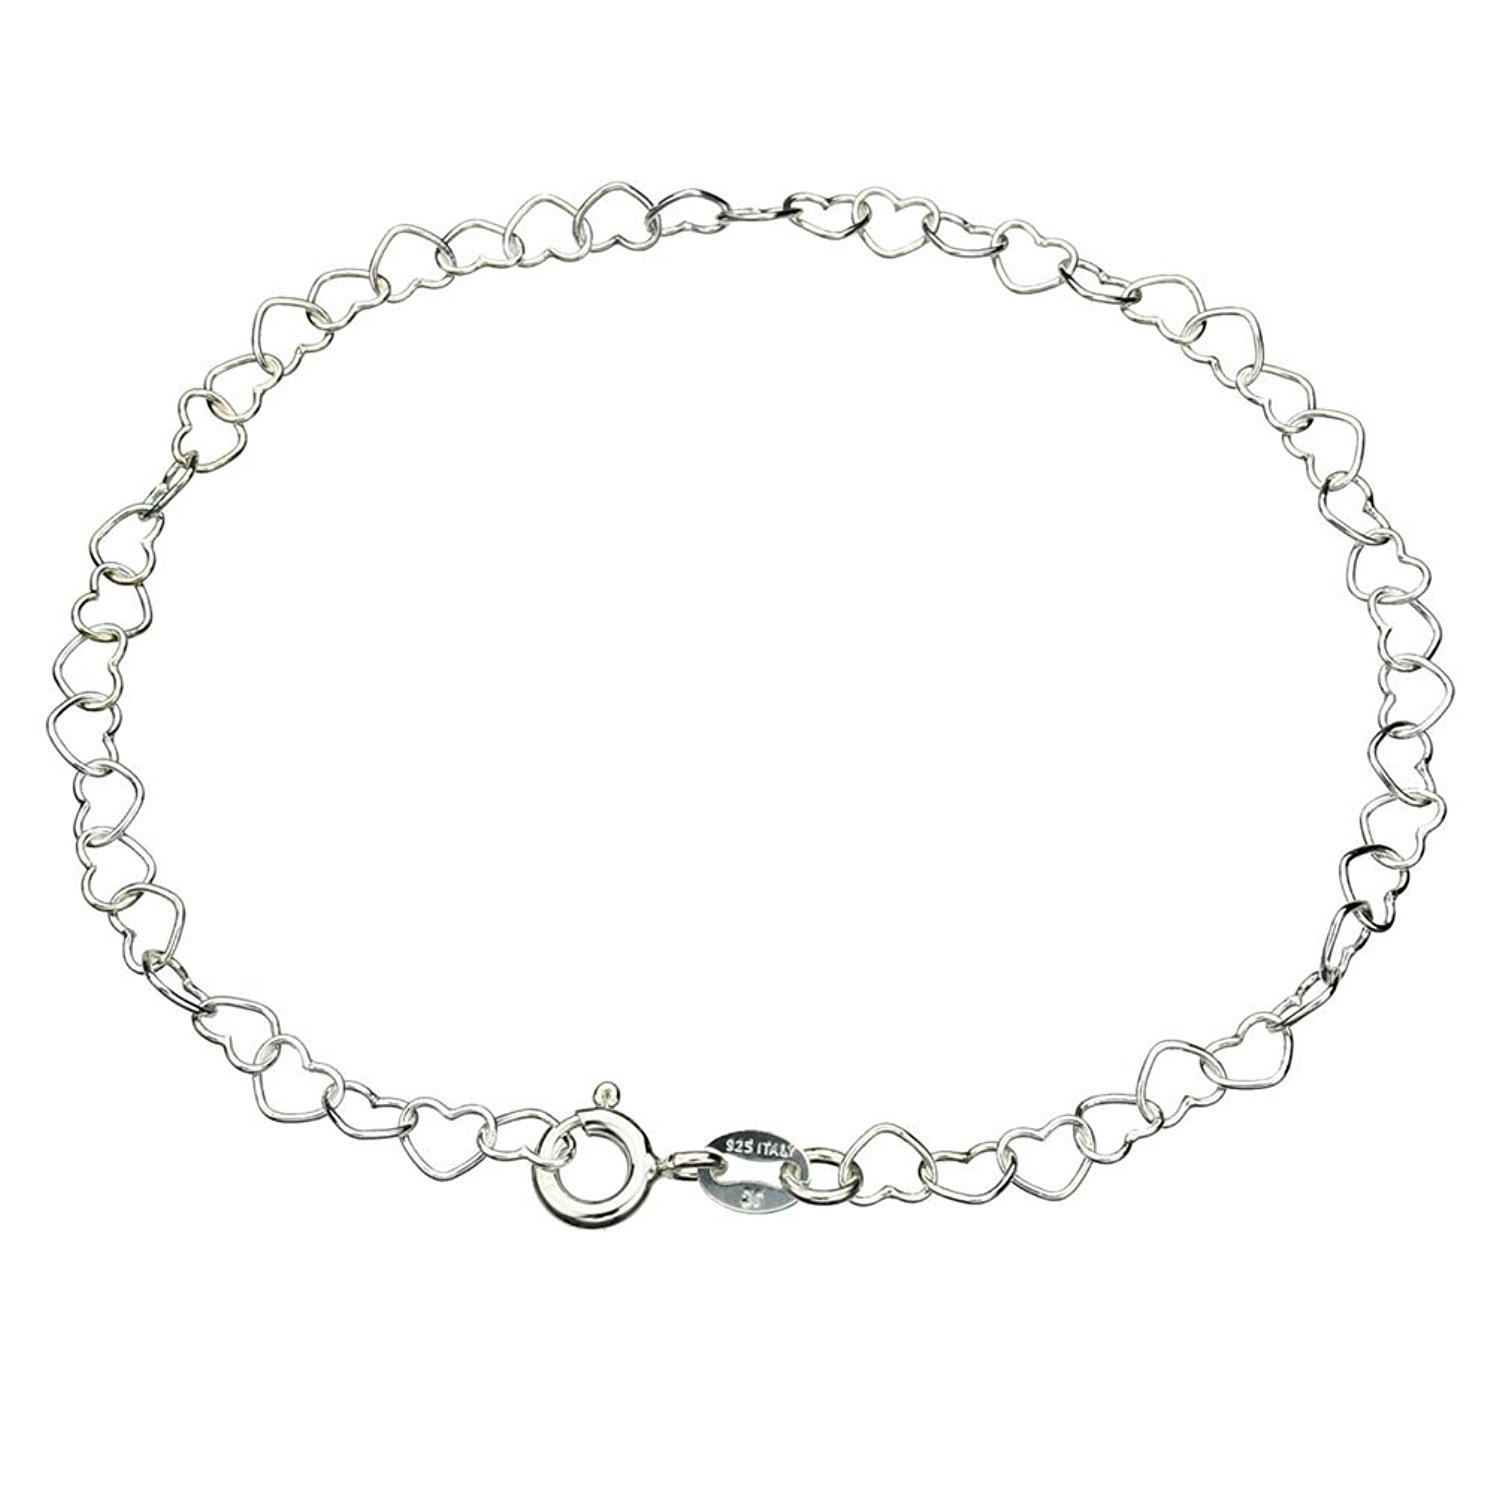 Sterling Silver Heart Link Nickel Free Chain Anklet Italy Adjustable